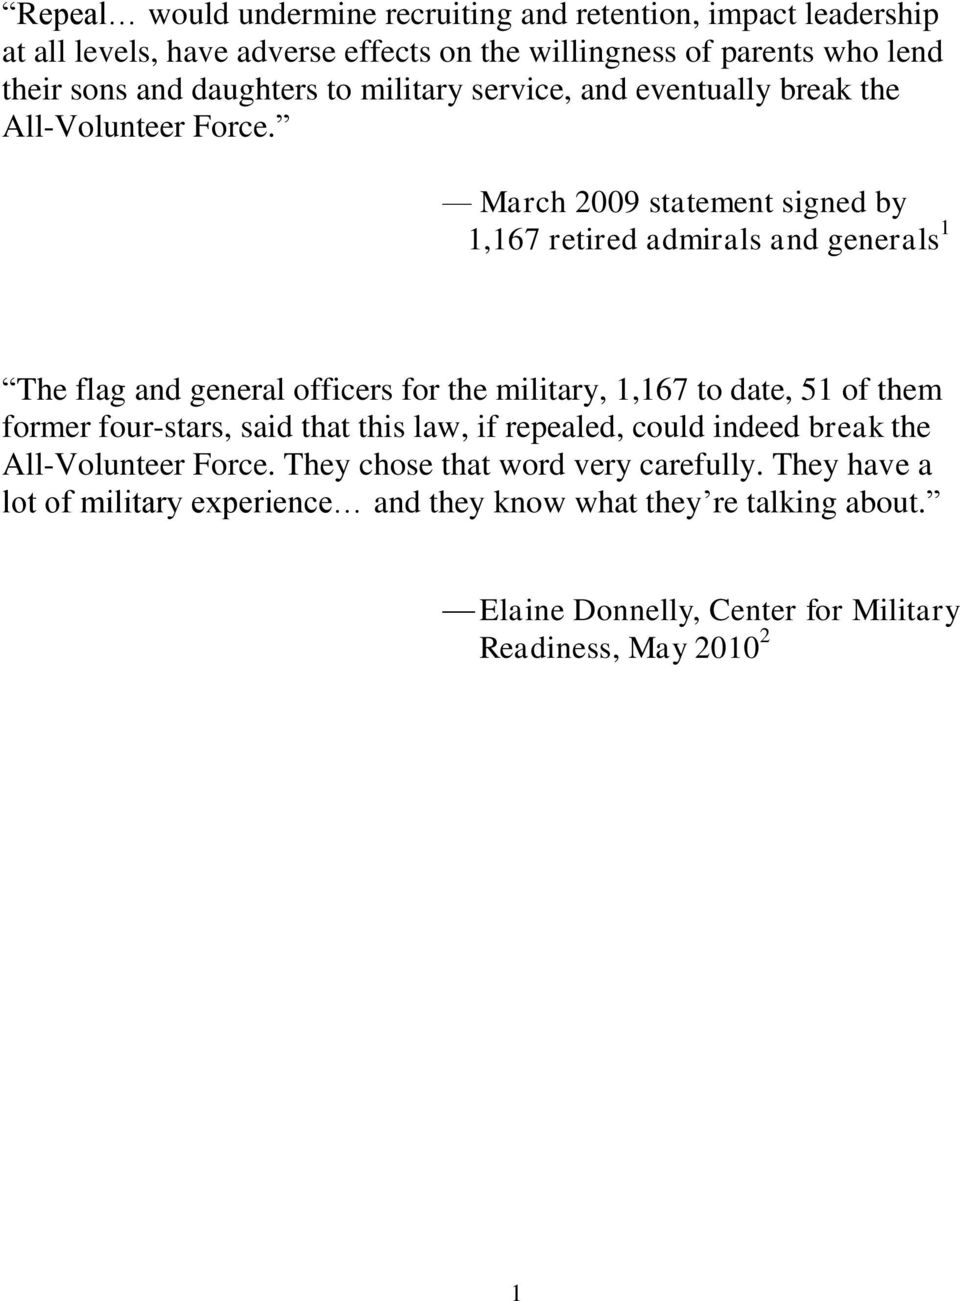 March 2009 statement signed by 1,167 retired admirals and generals 1 The flag and general officers for the military, 1,167 to date, 51 of them former four-stars,